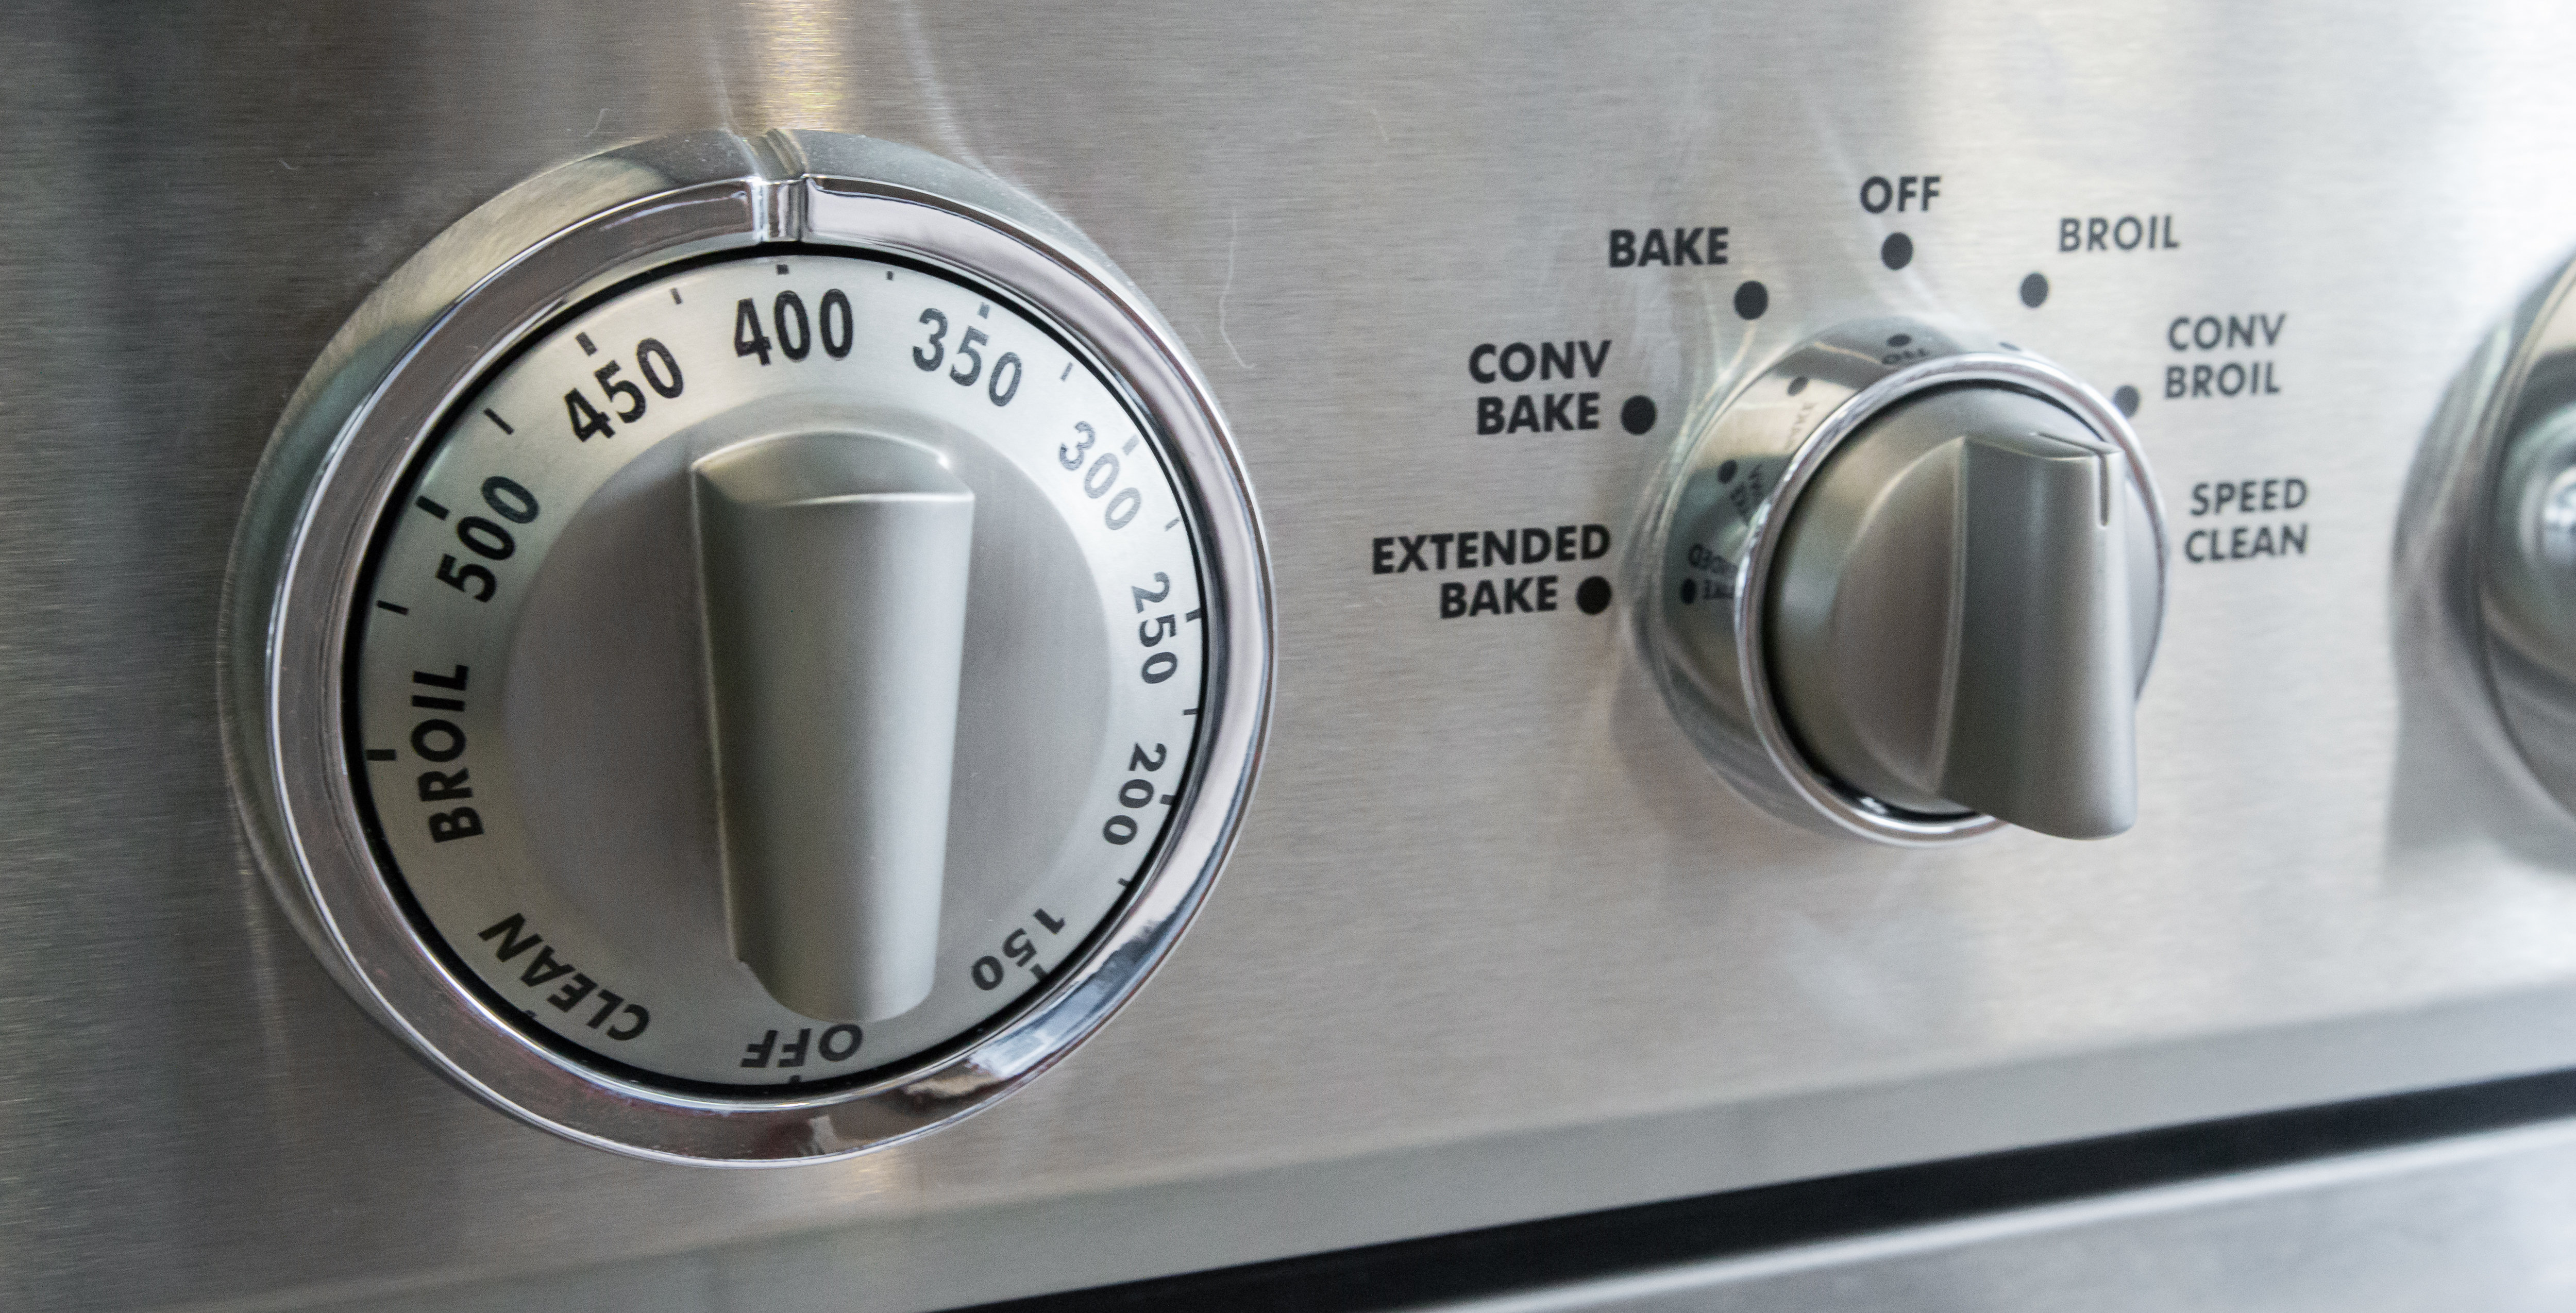 Oven control knobs